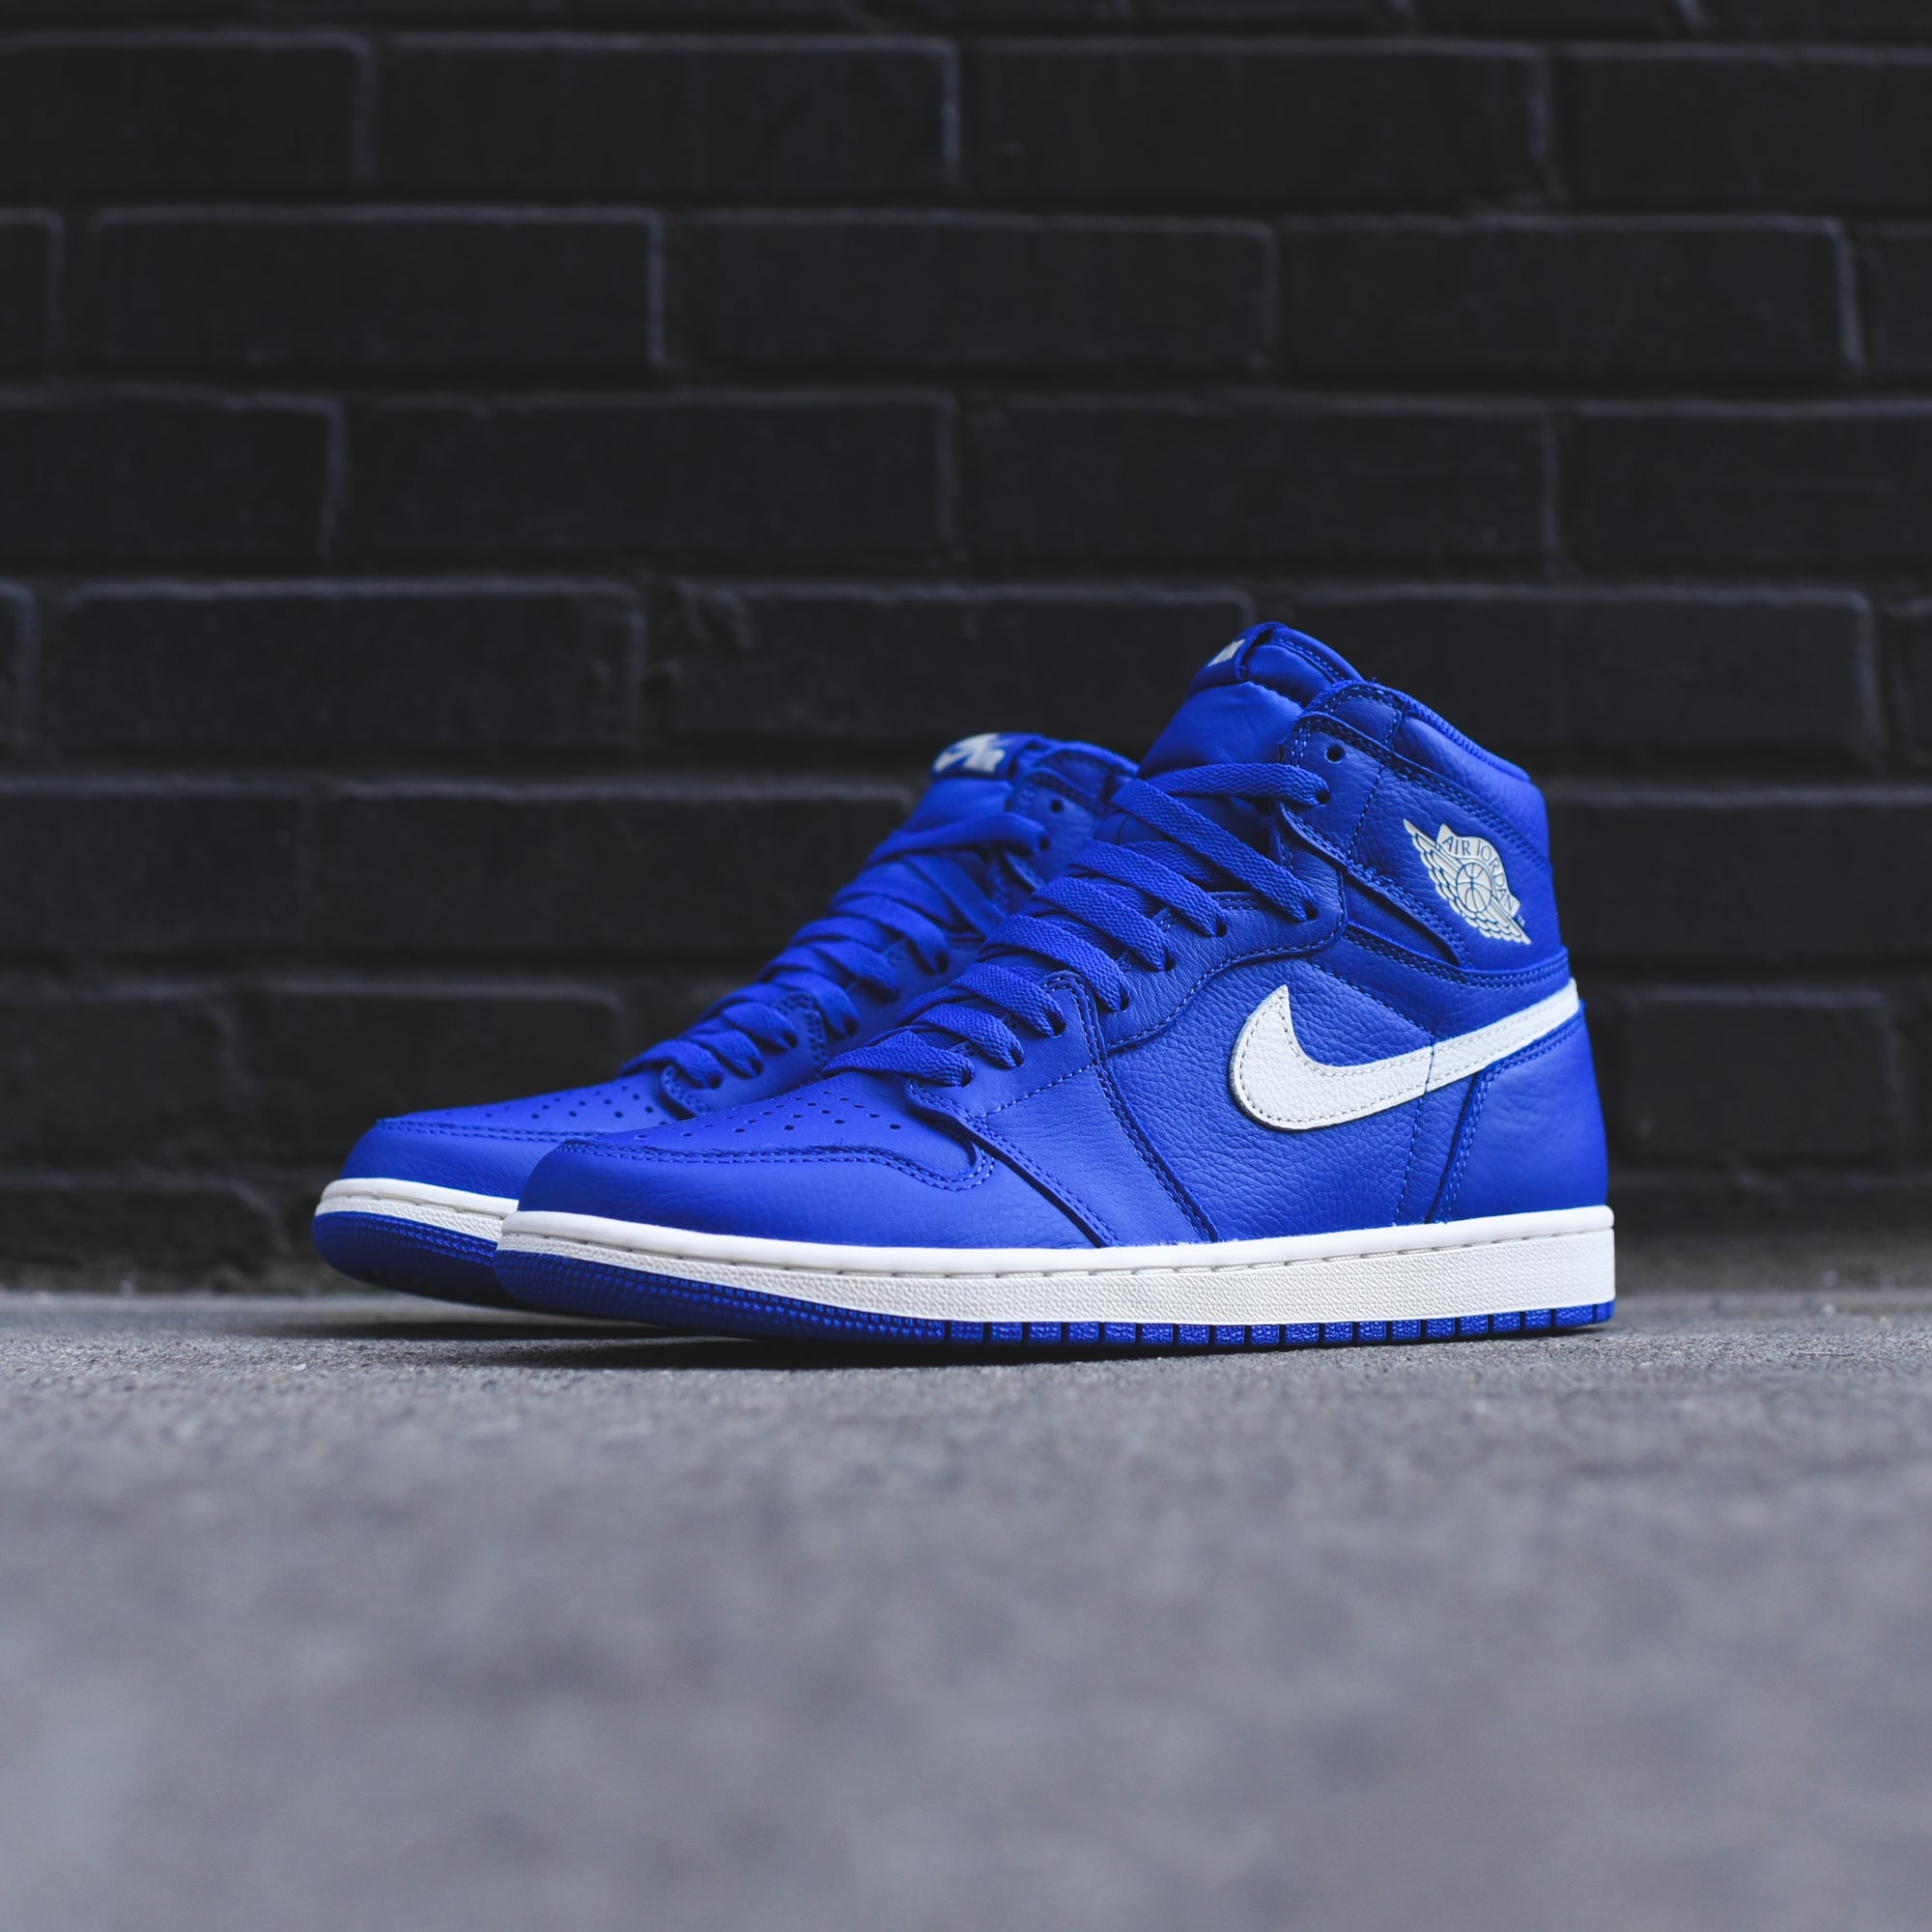 2011c9ad624ee9 Nike Air Jordan 1 - Hyper Royal   Sail – Kith